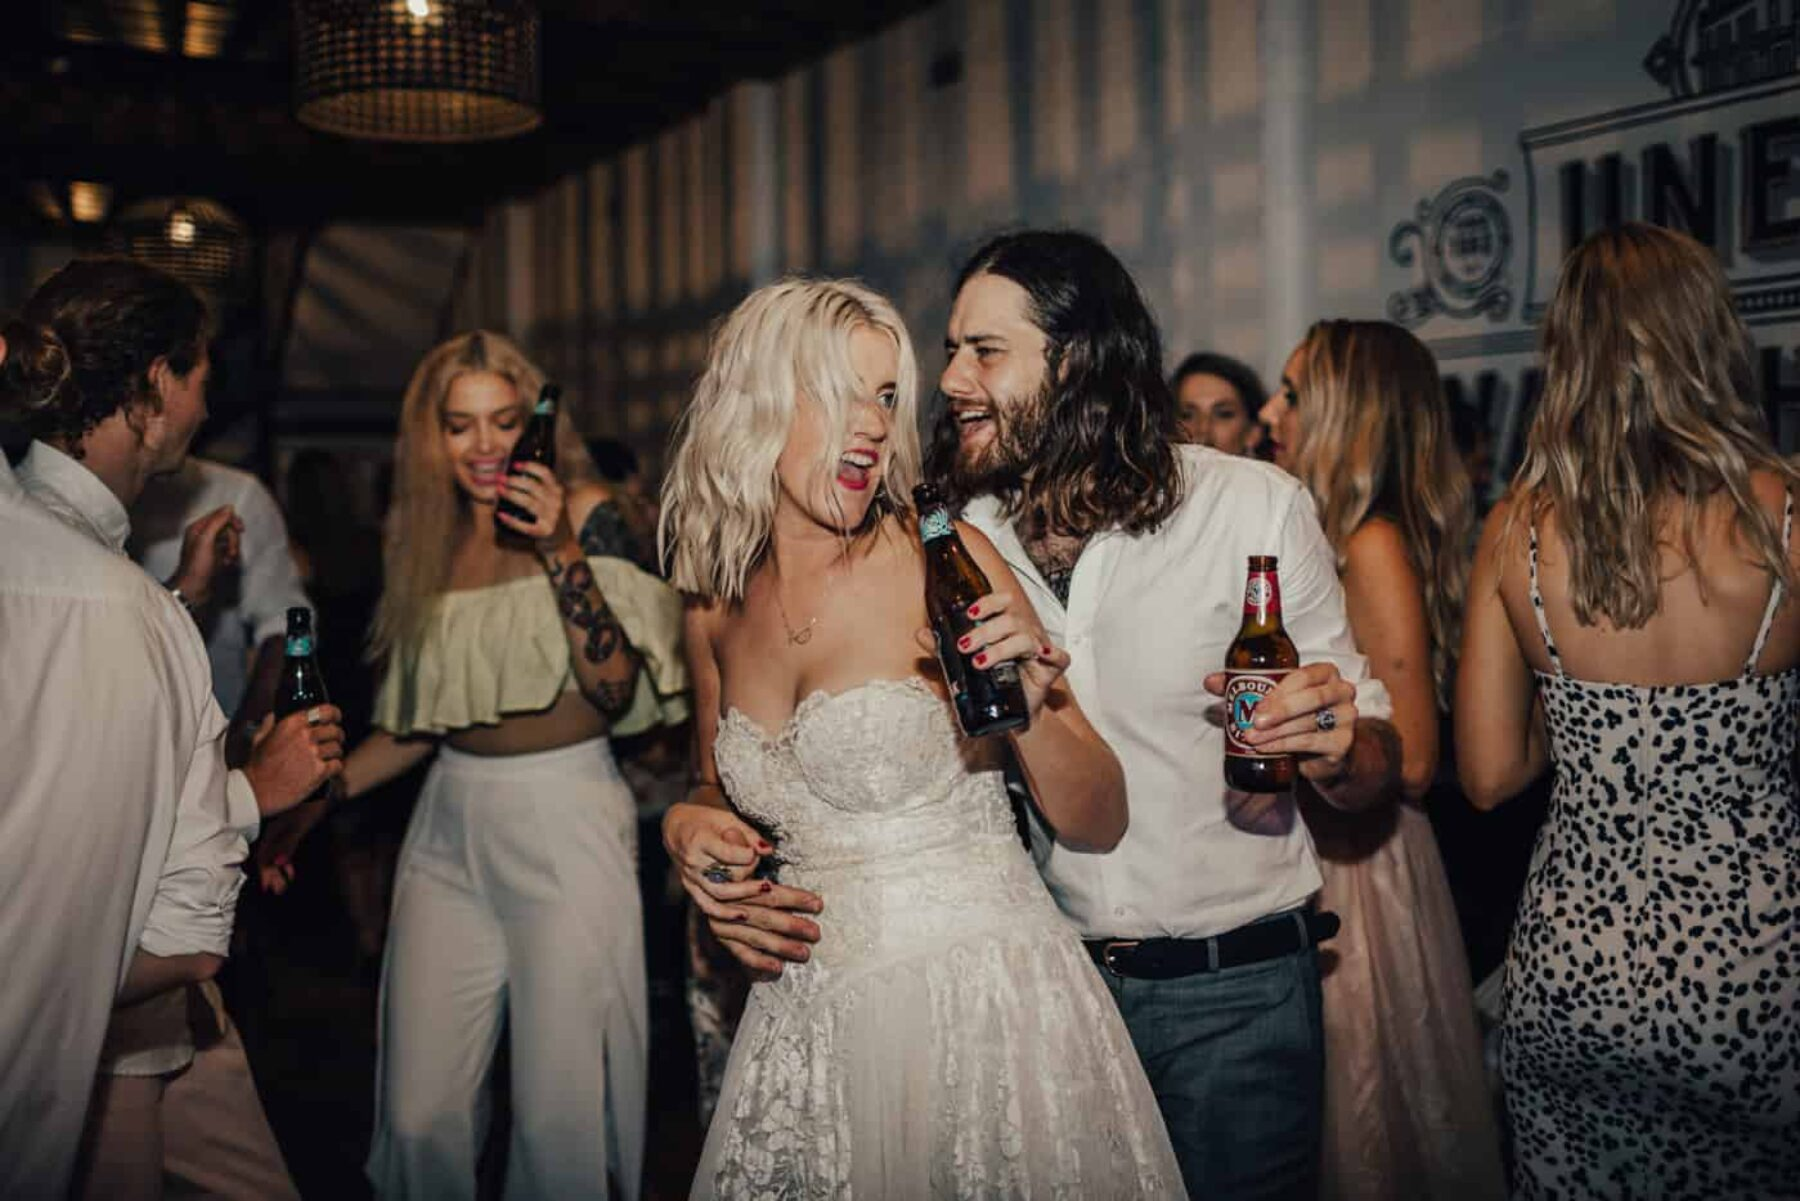 Boho wedding at Uneke Warehouse in Wagga Wagga NSW - Tilly Clifford Photography